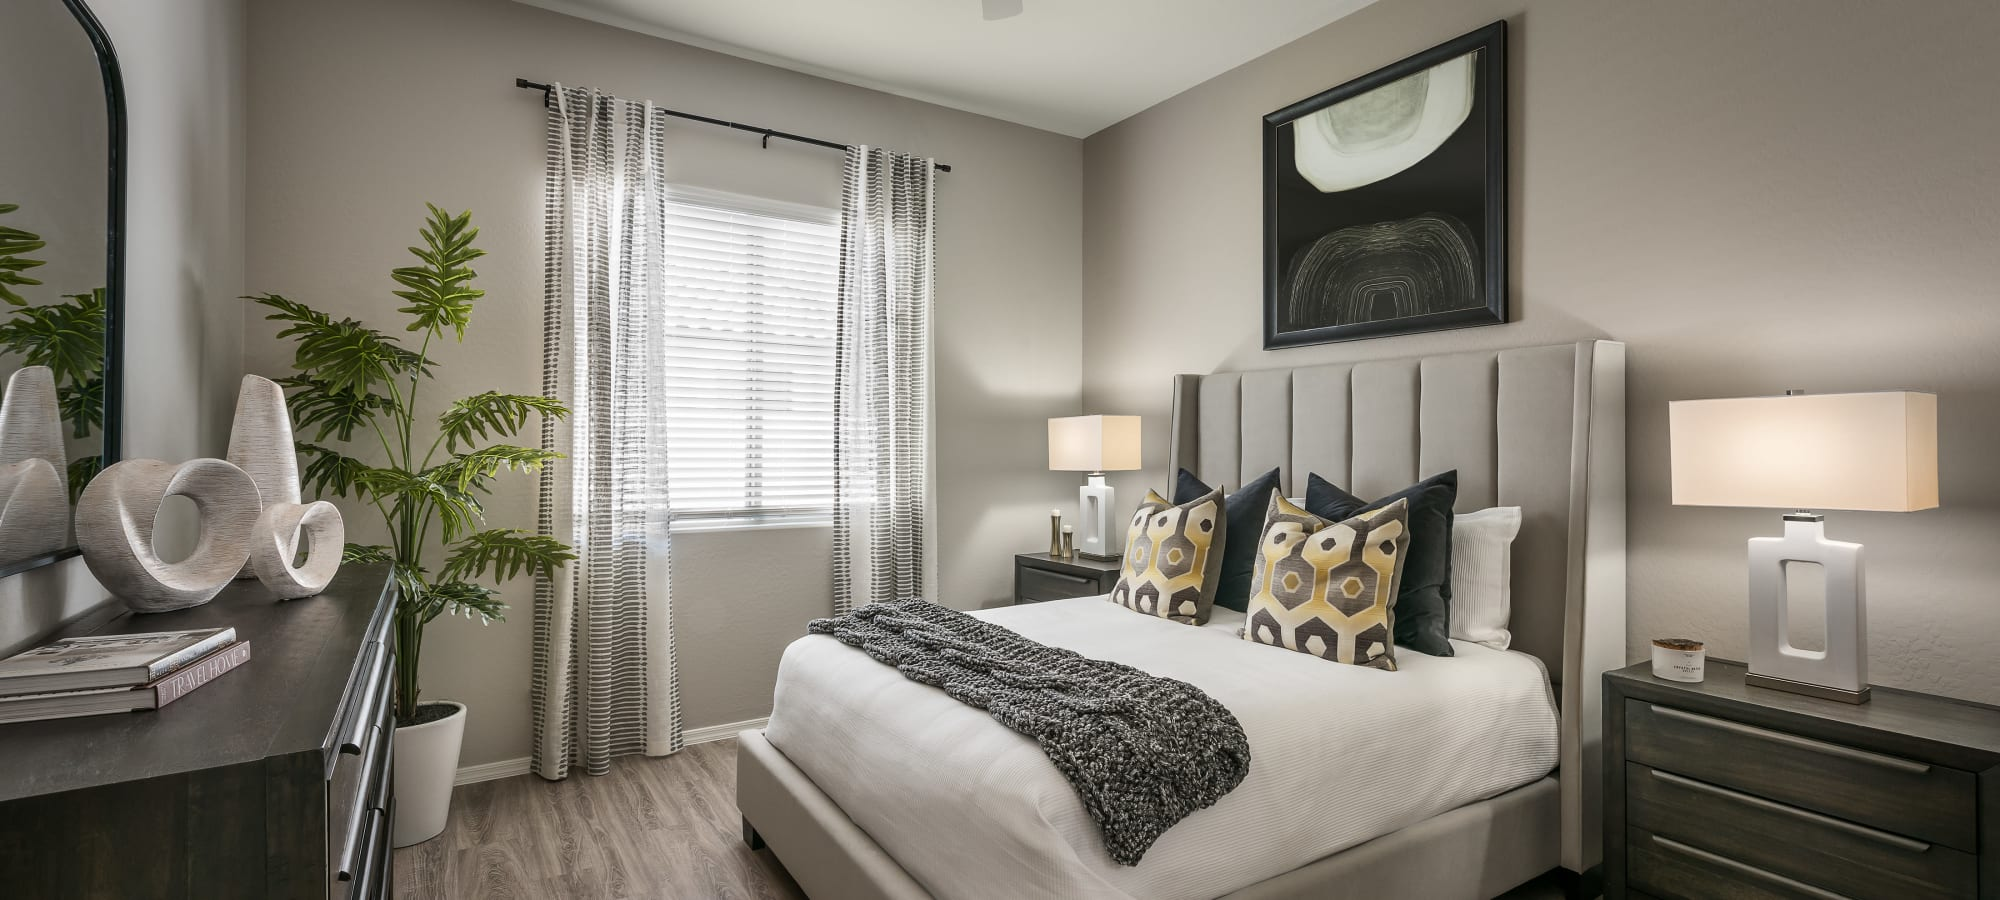 Luxurious bedroom at TerraLane at Canyon Trails in Goodyear, Arizona